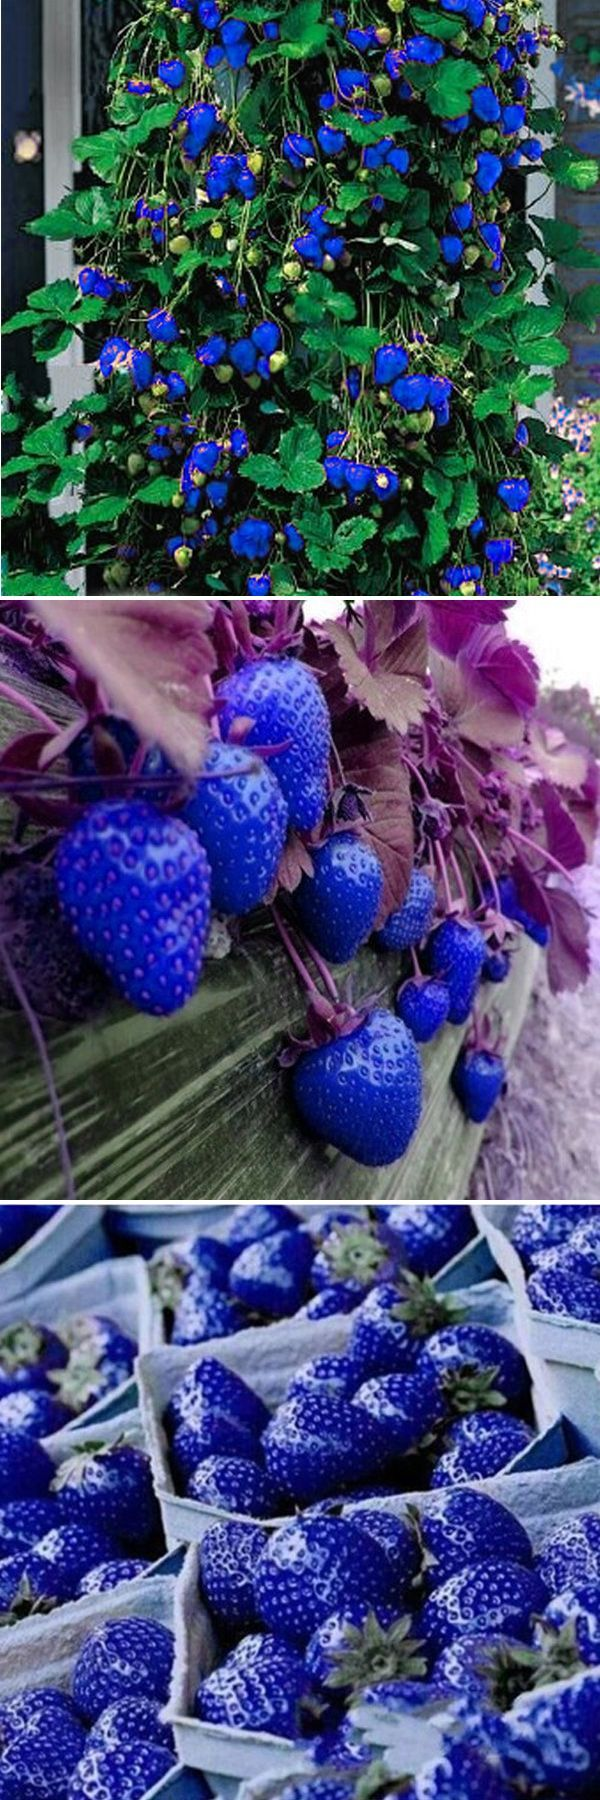 100 Pcs Seeds Rare Delicious Blue Strawberry Vegetables Fruit Plants Seed NEW N